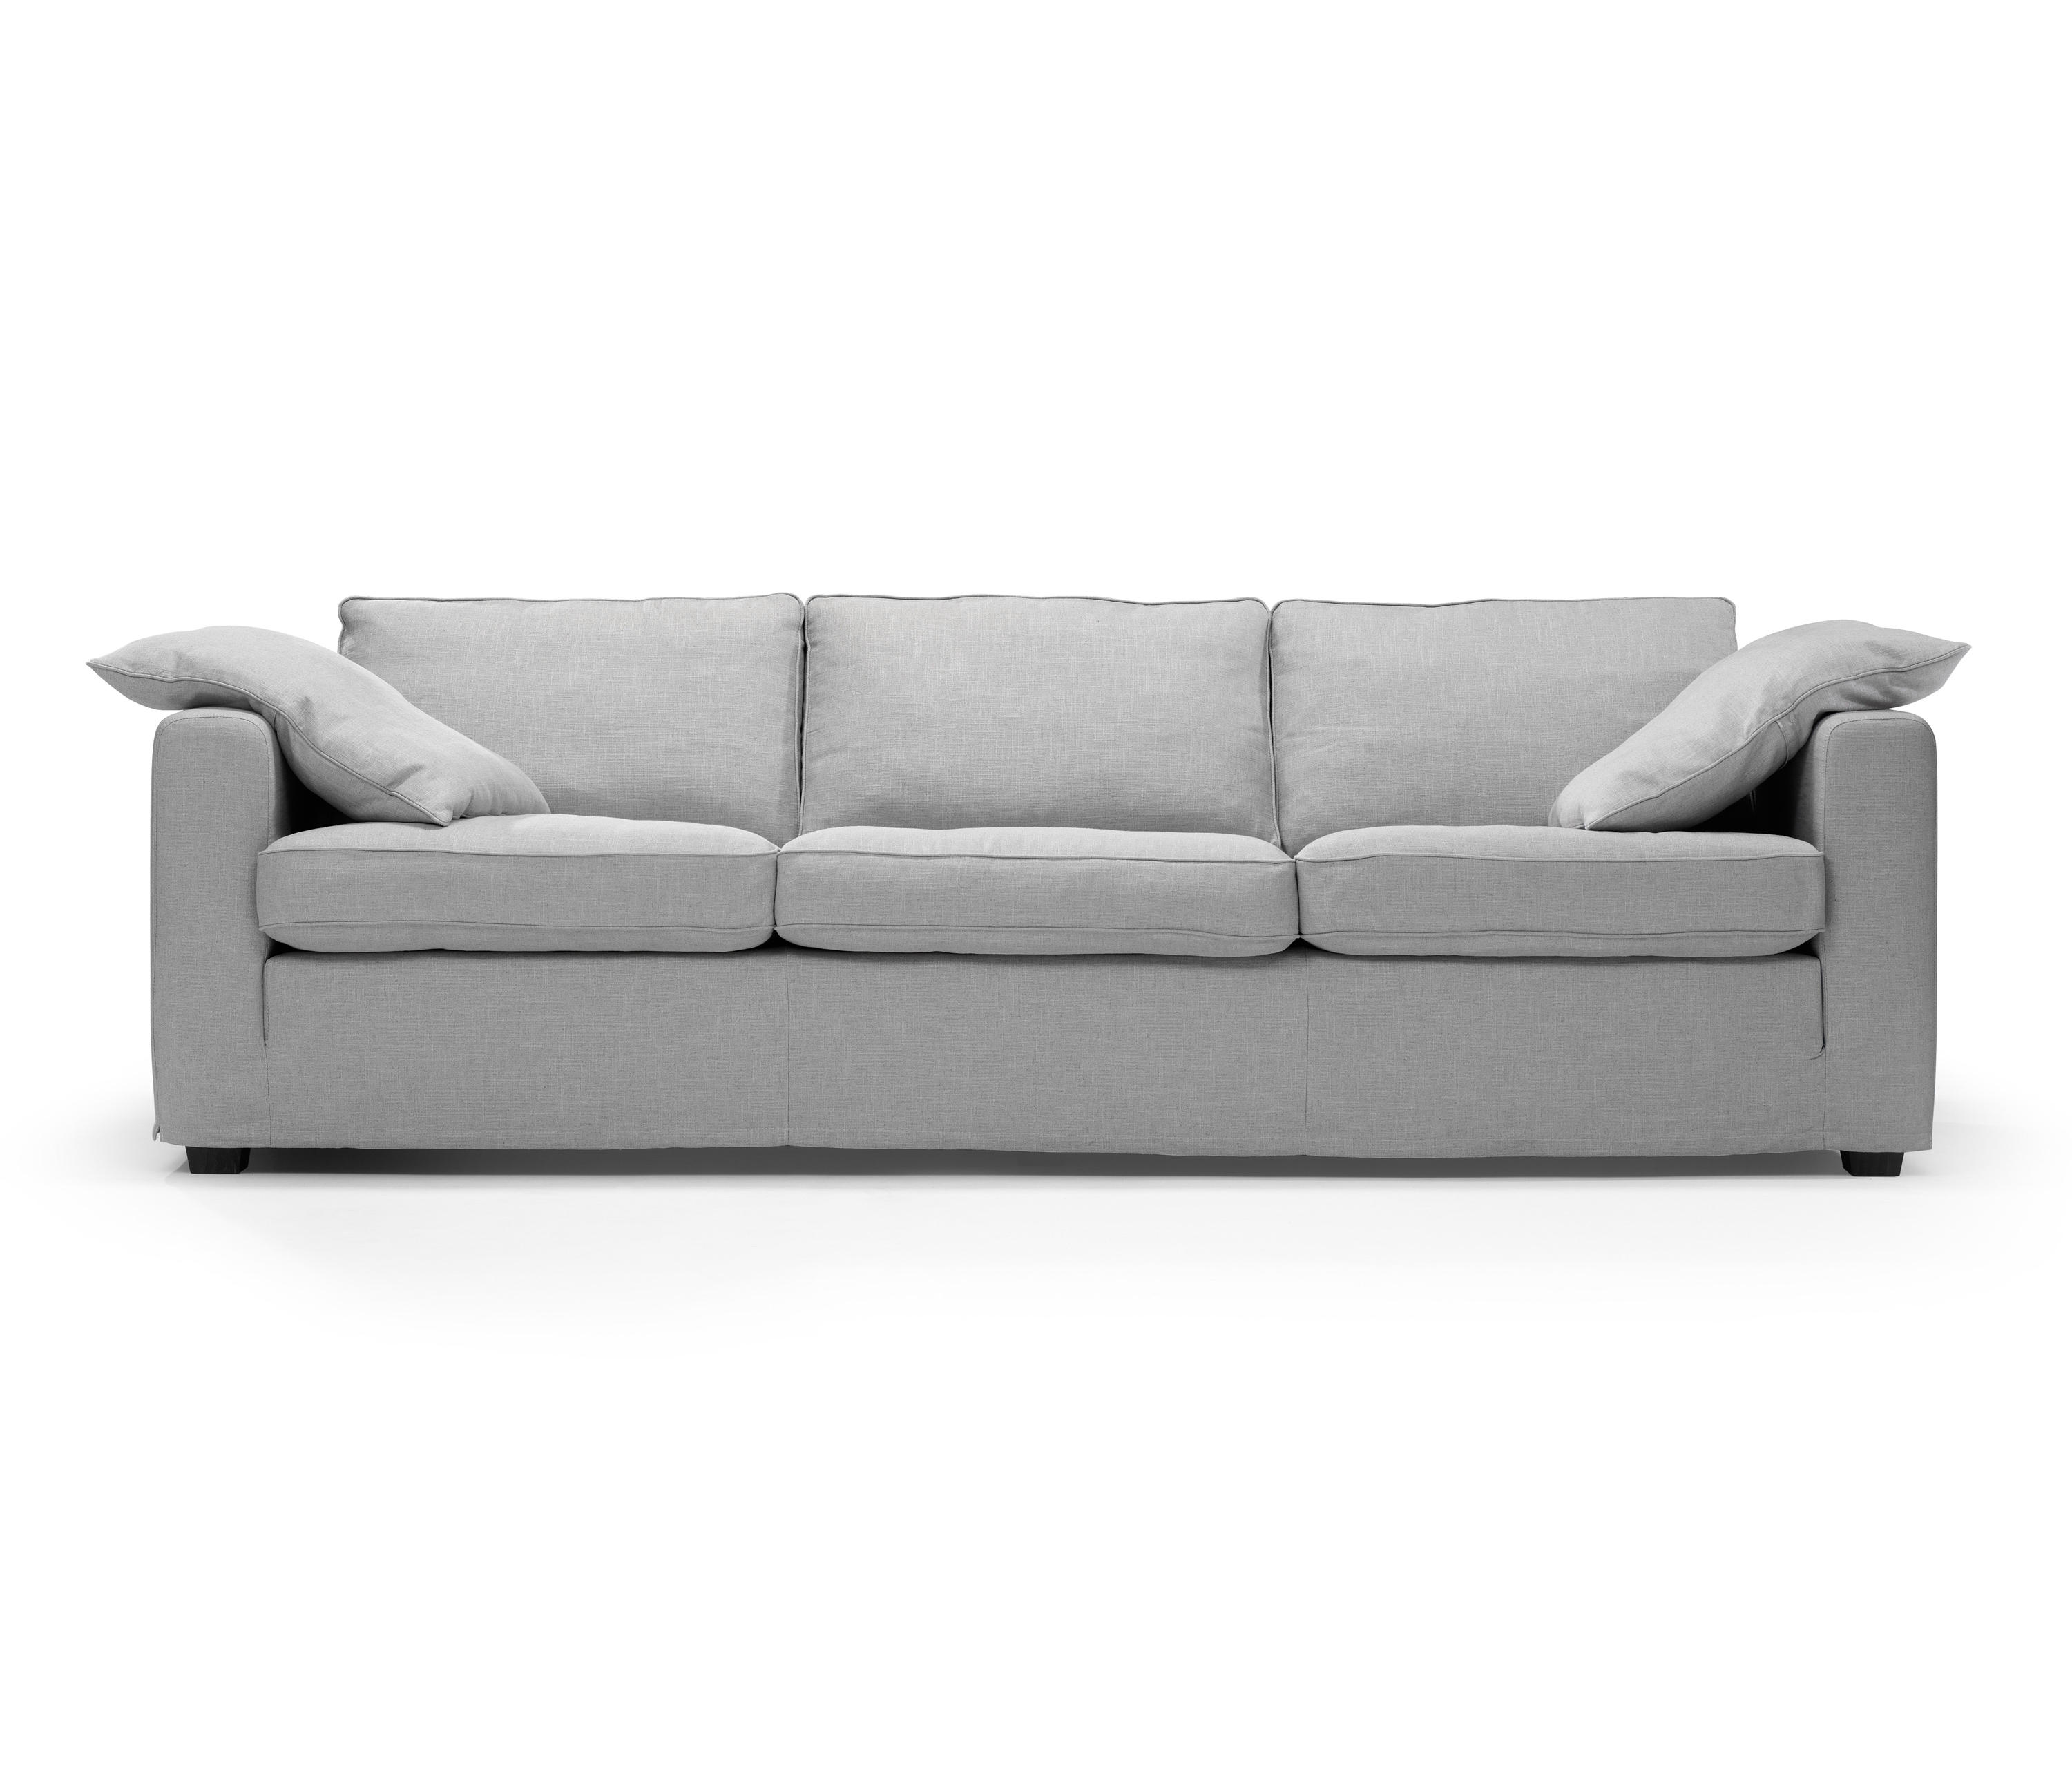 EASY LIVING SOFA Lounge sofas from Linteloo